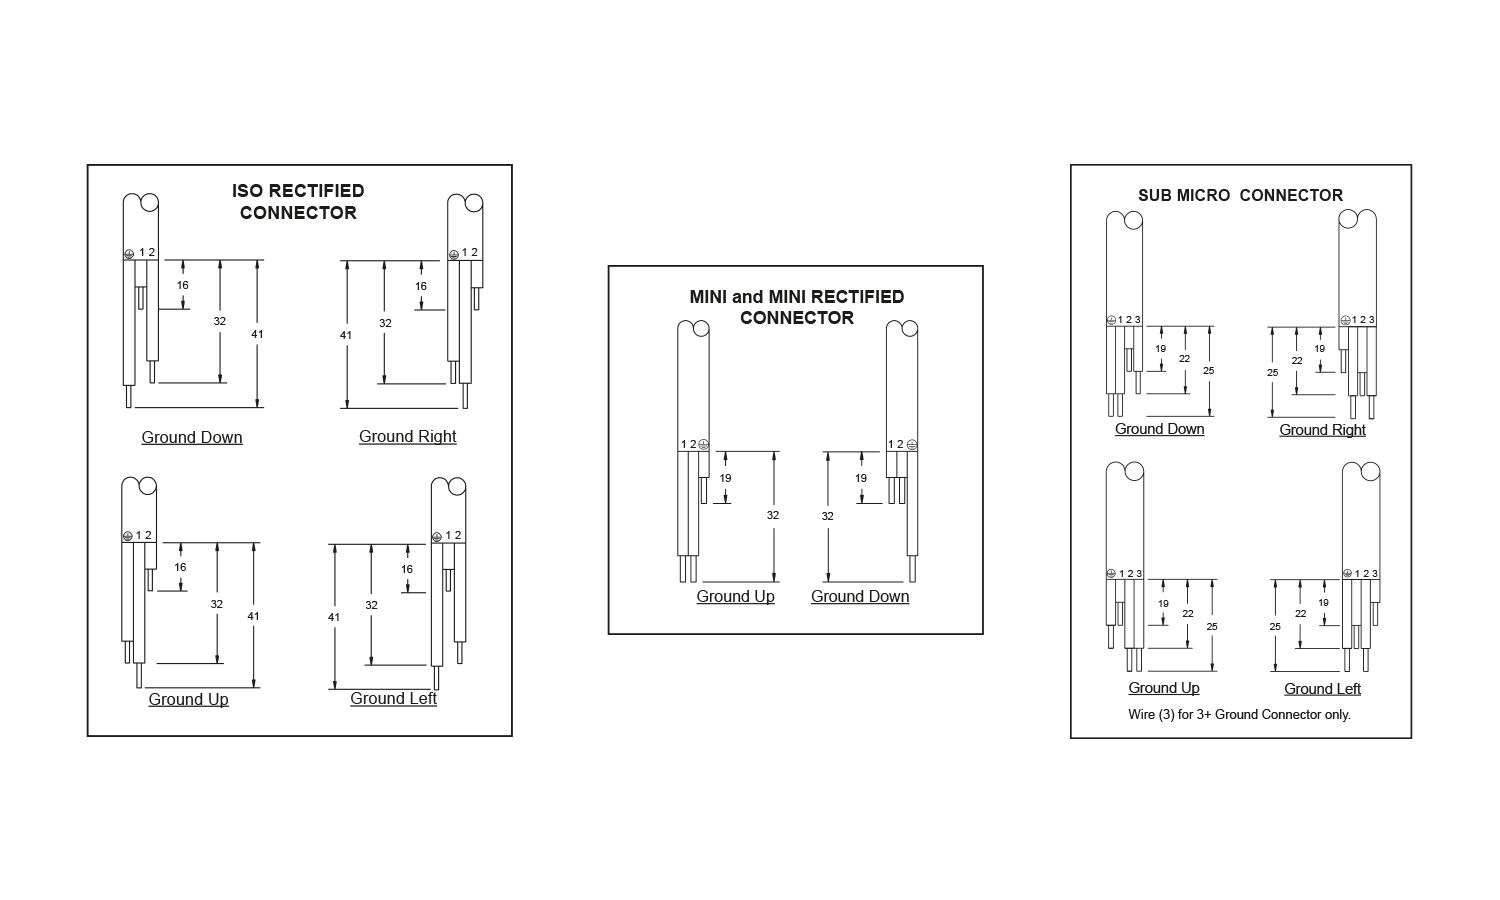 Canfield Connector Electrical Wiring Terminology